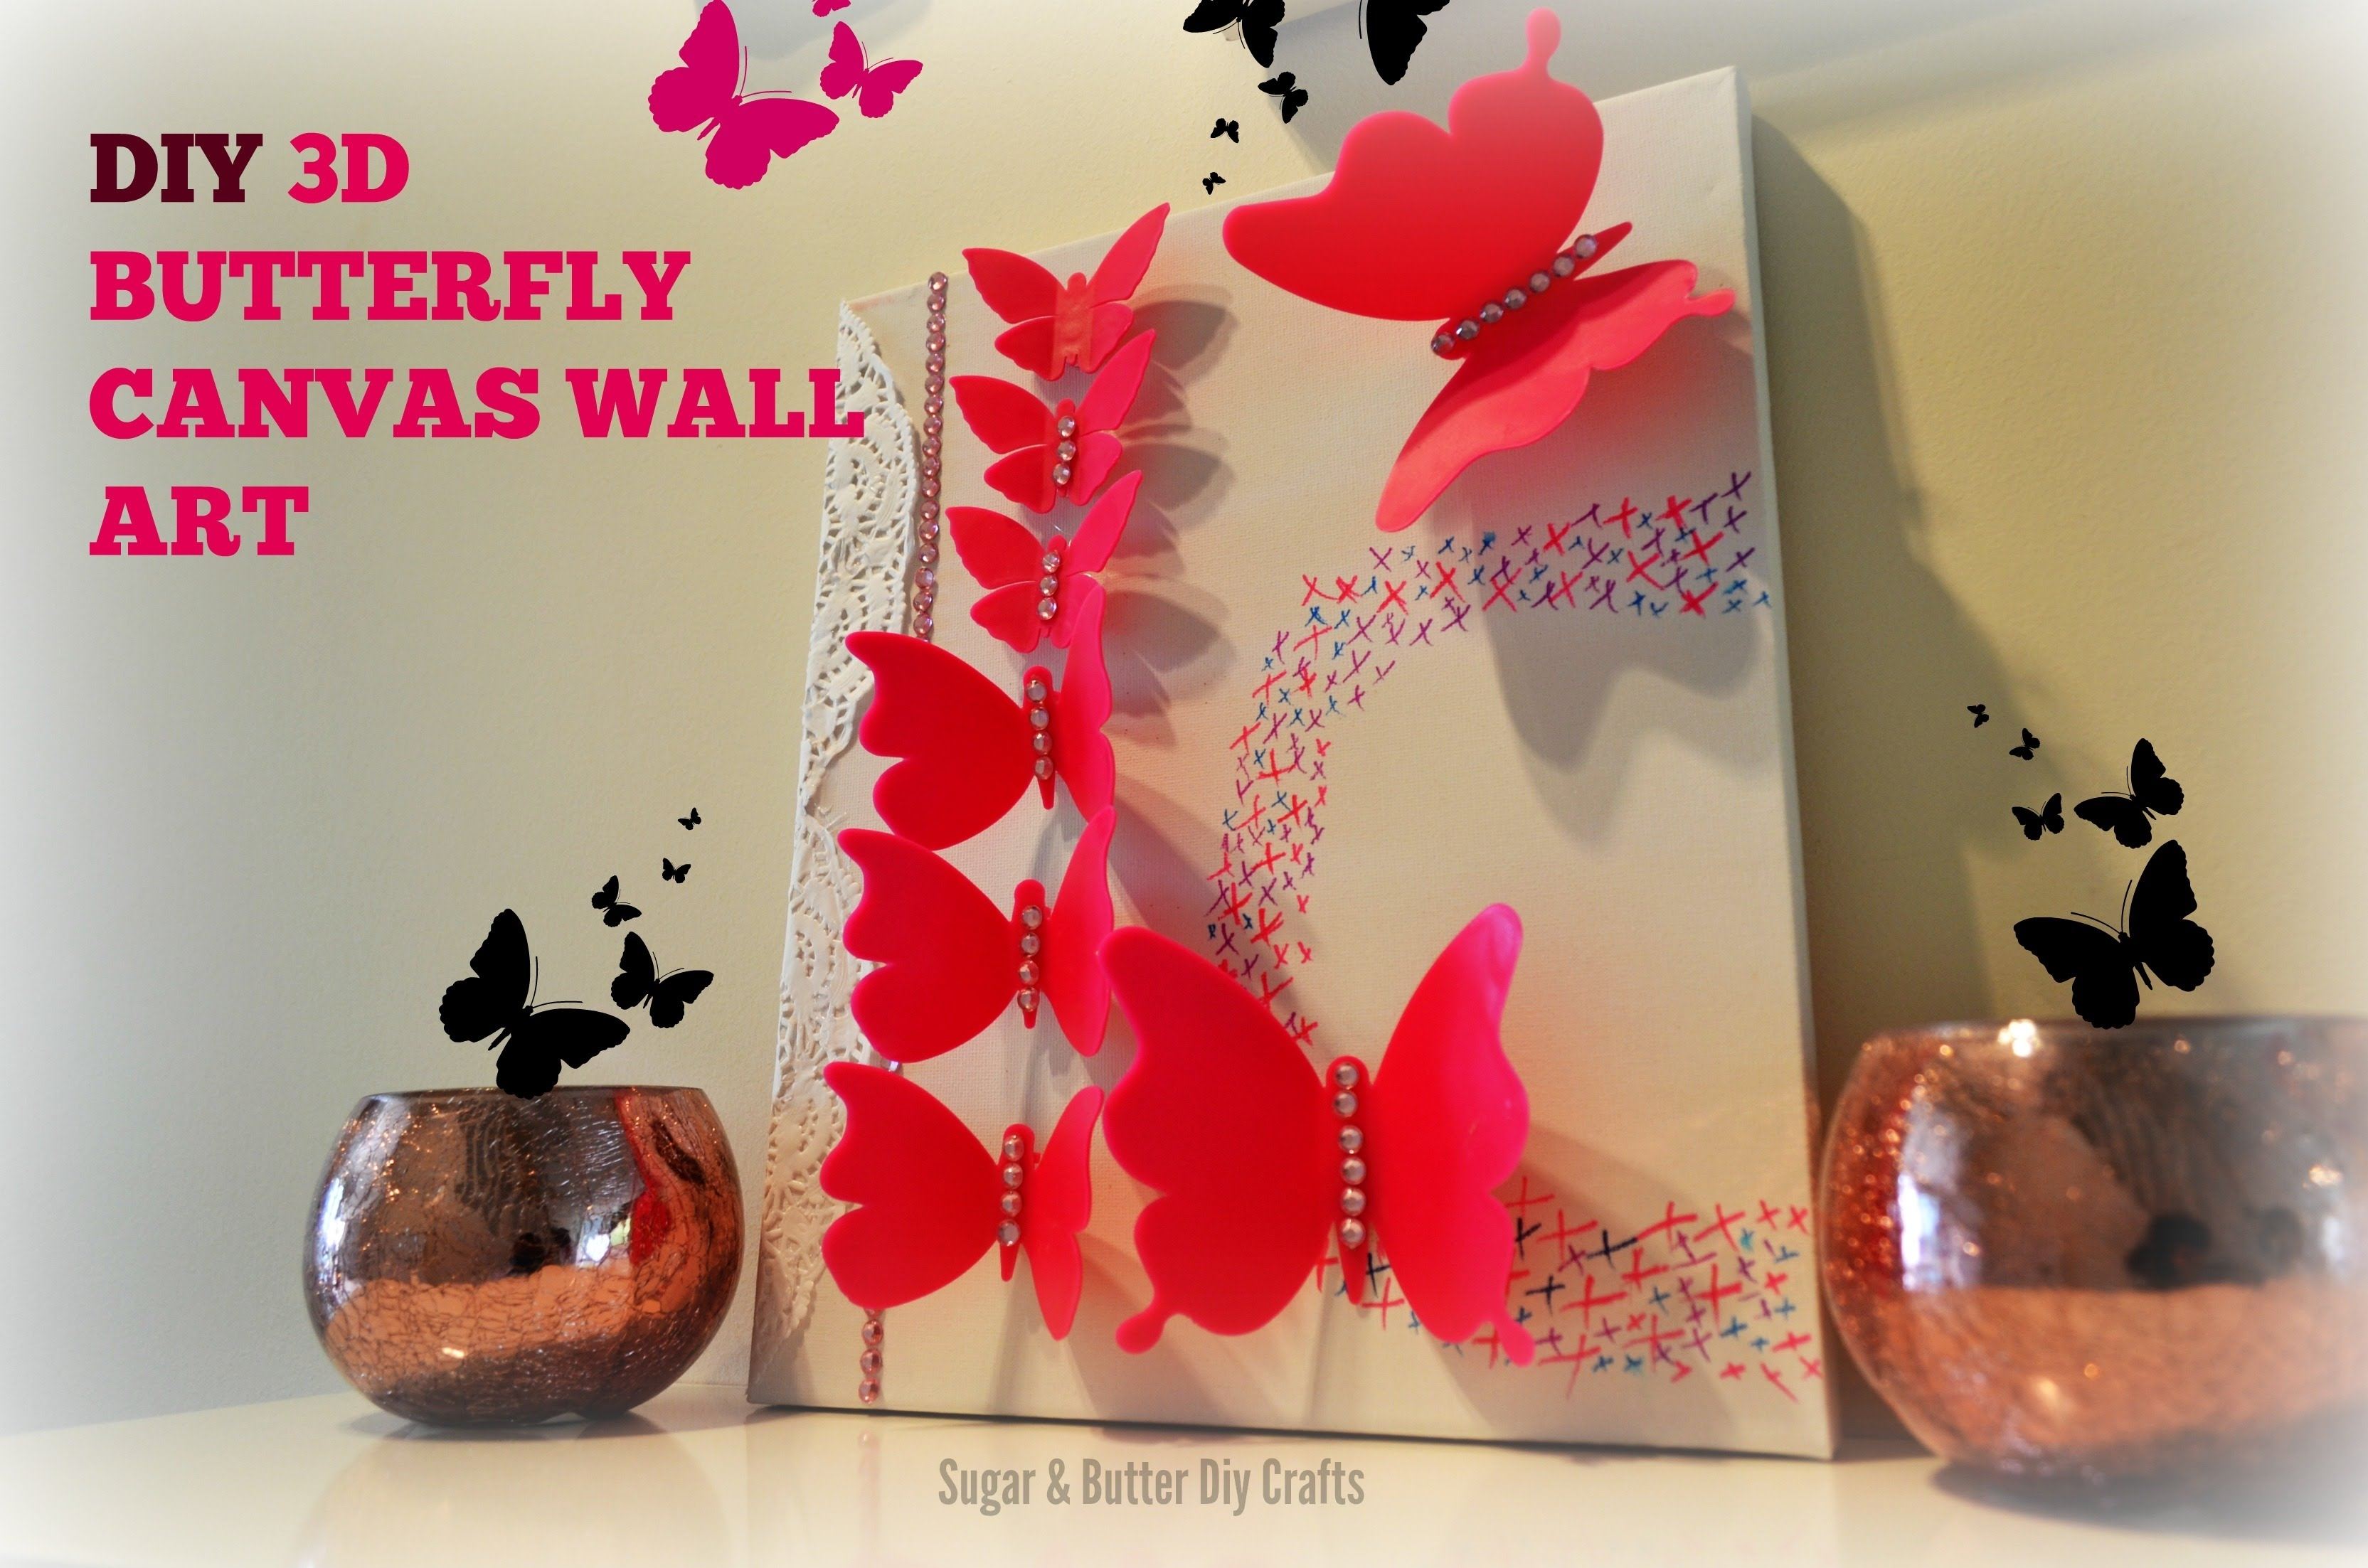 Diy Room Decor 3D Butterflies Wall Canvas Perfect For Girls Or With 2017 Butterflies Canvas Wall Art (View 6 of 15)